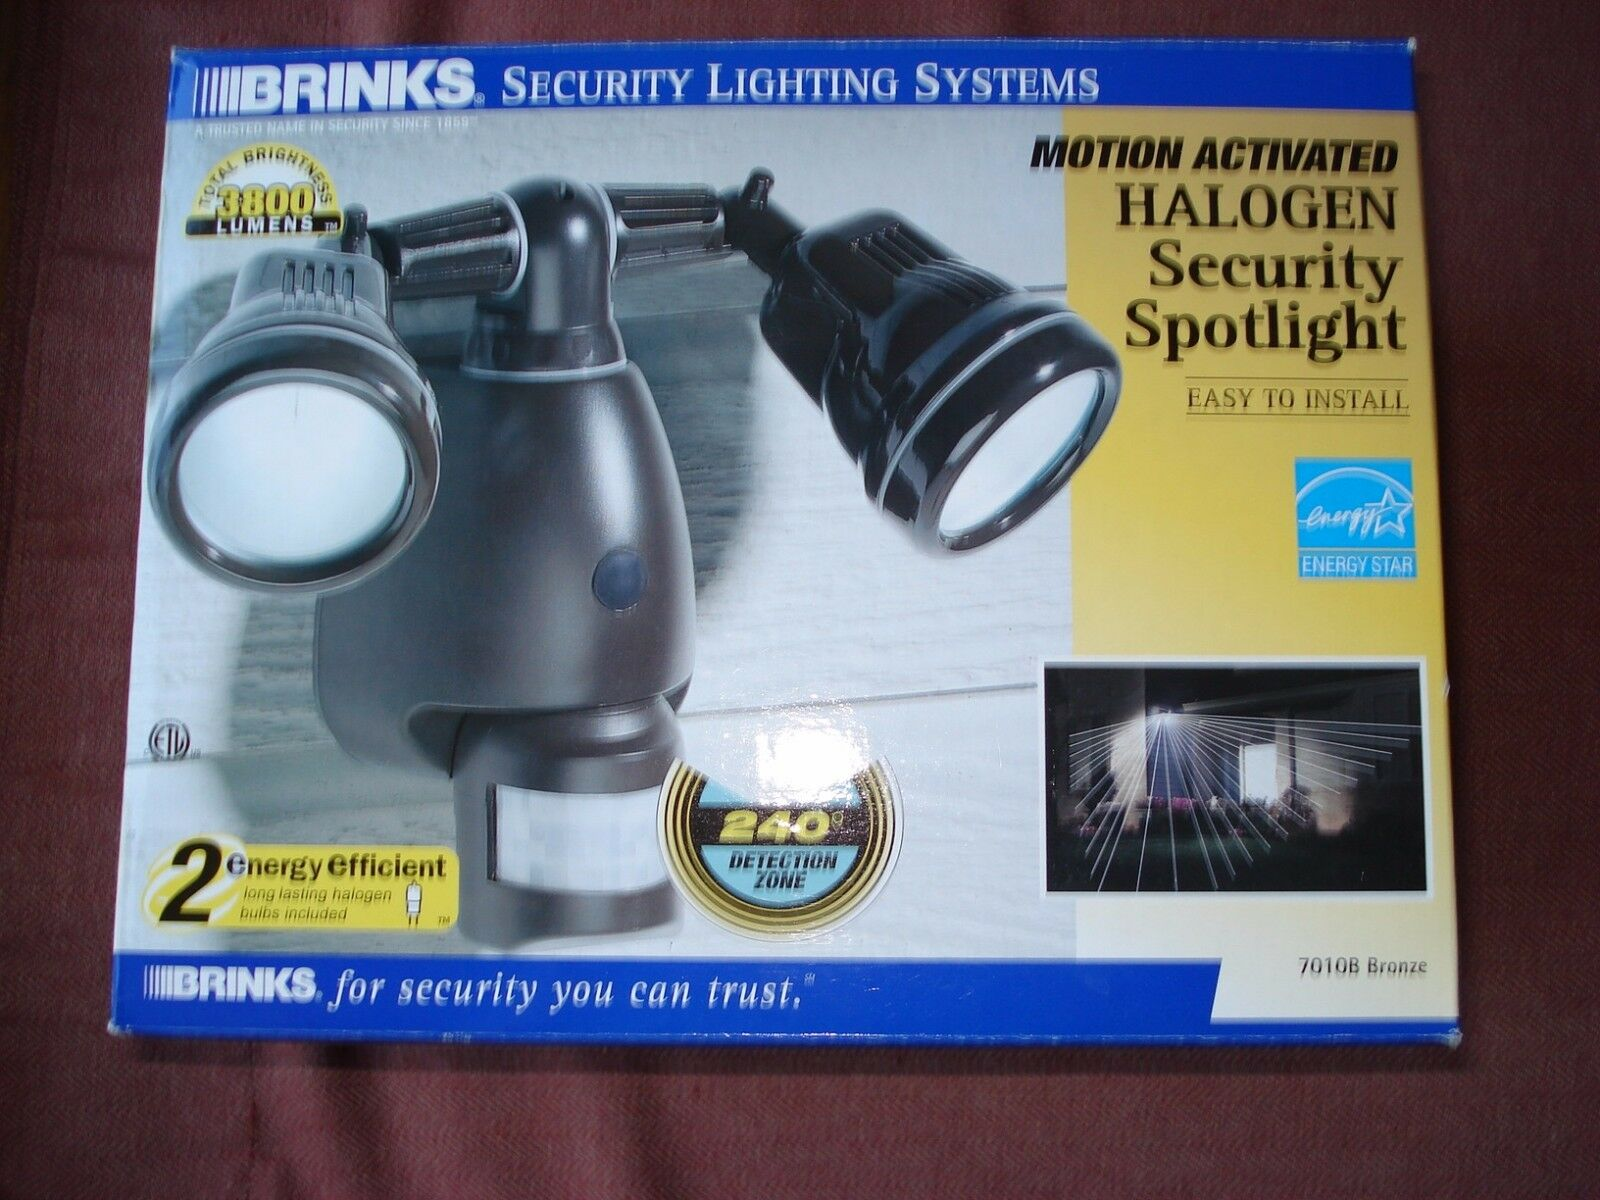 Brinks security lighting systems motion activated halogen picture 1 of 2 aloadofball Images